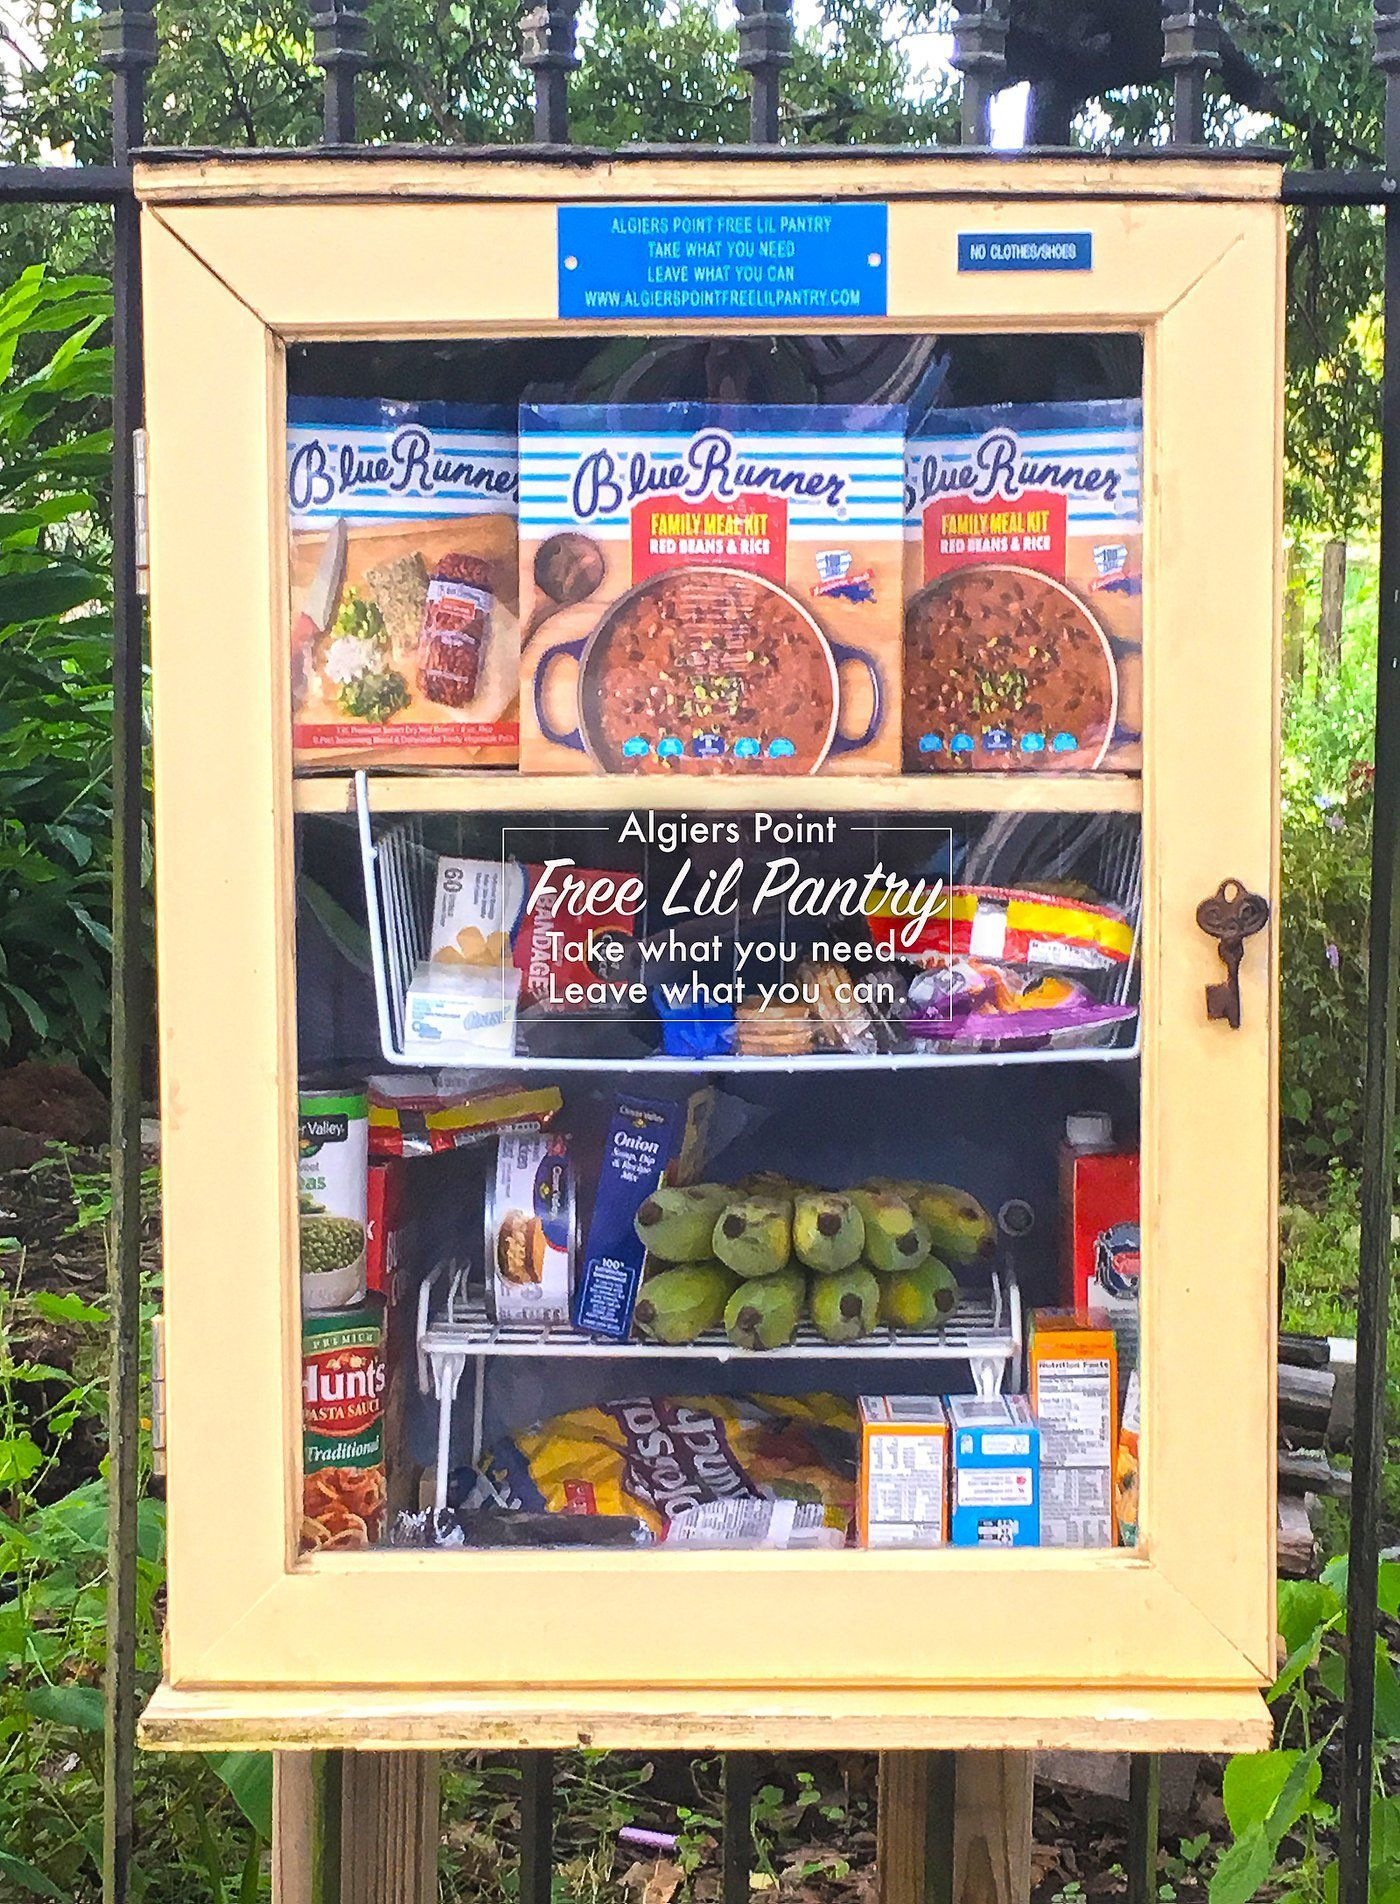 Algiers Point Free Lil Pantry